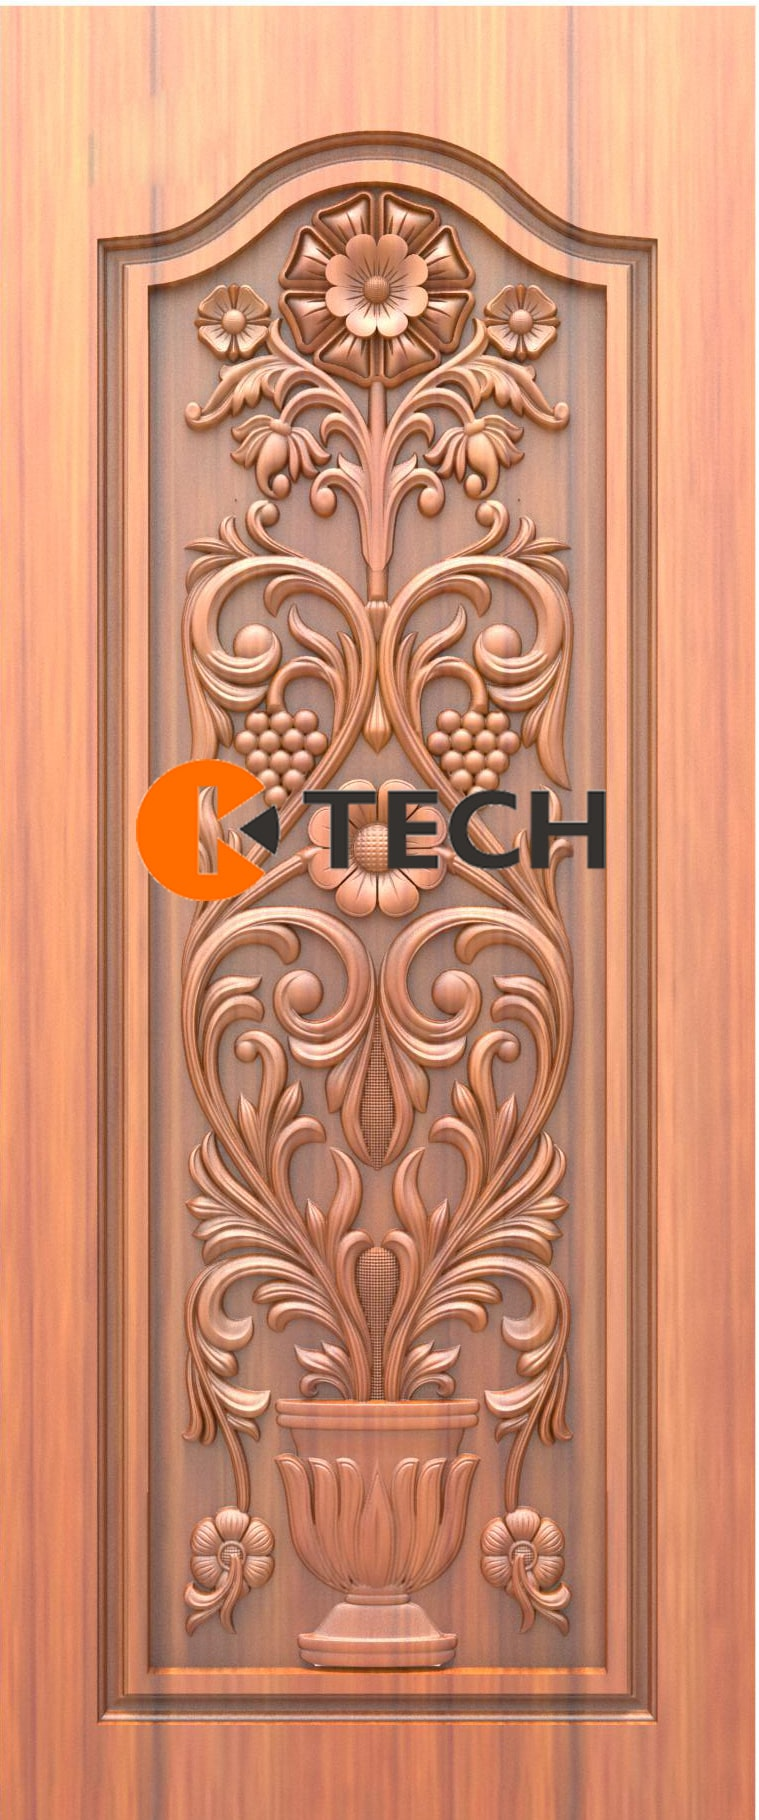 K-TECH CNC Doors Design 187